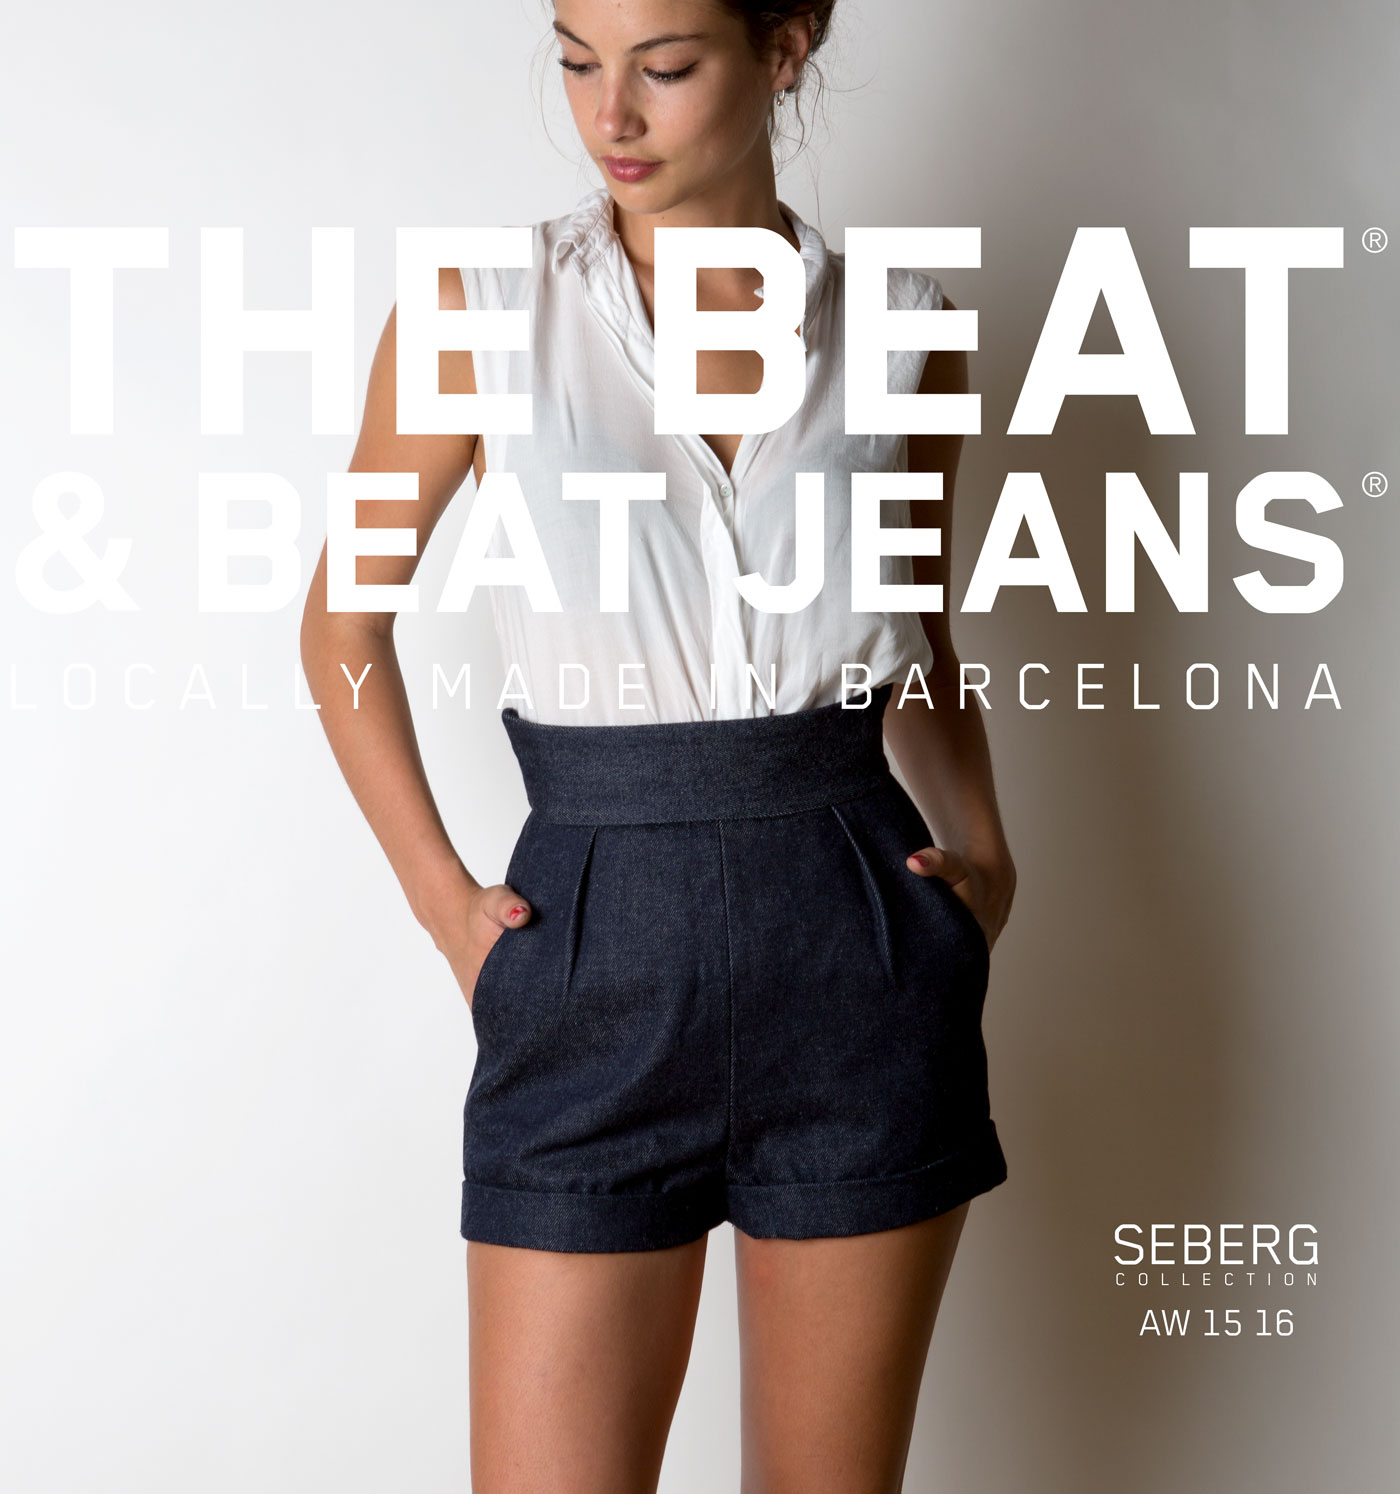 00.0_TBBJ_SEBERG_SHORTS_DENIM_CASTING